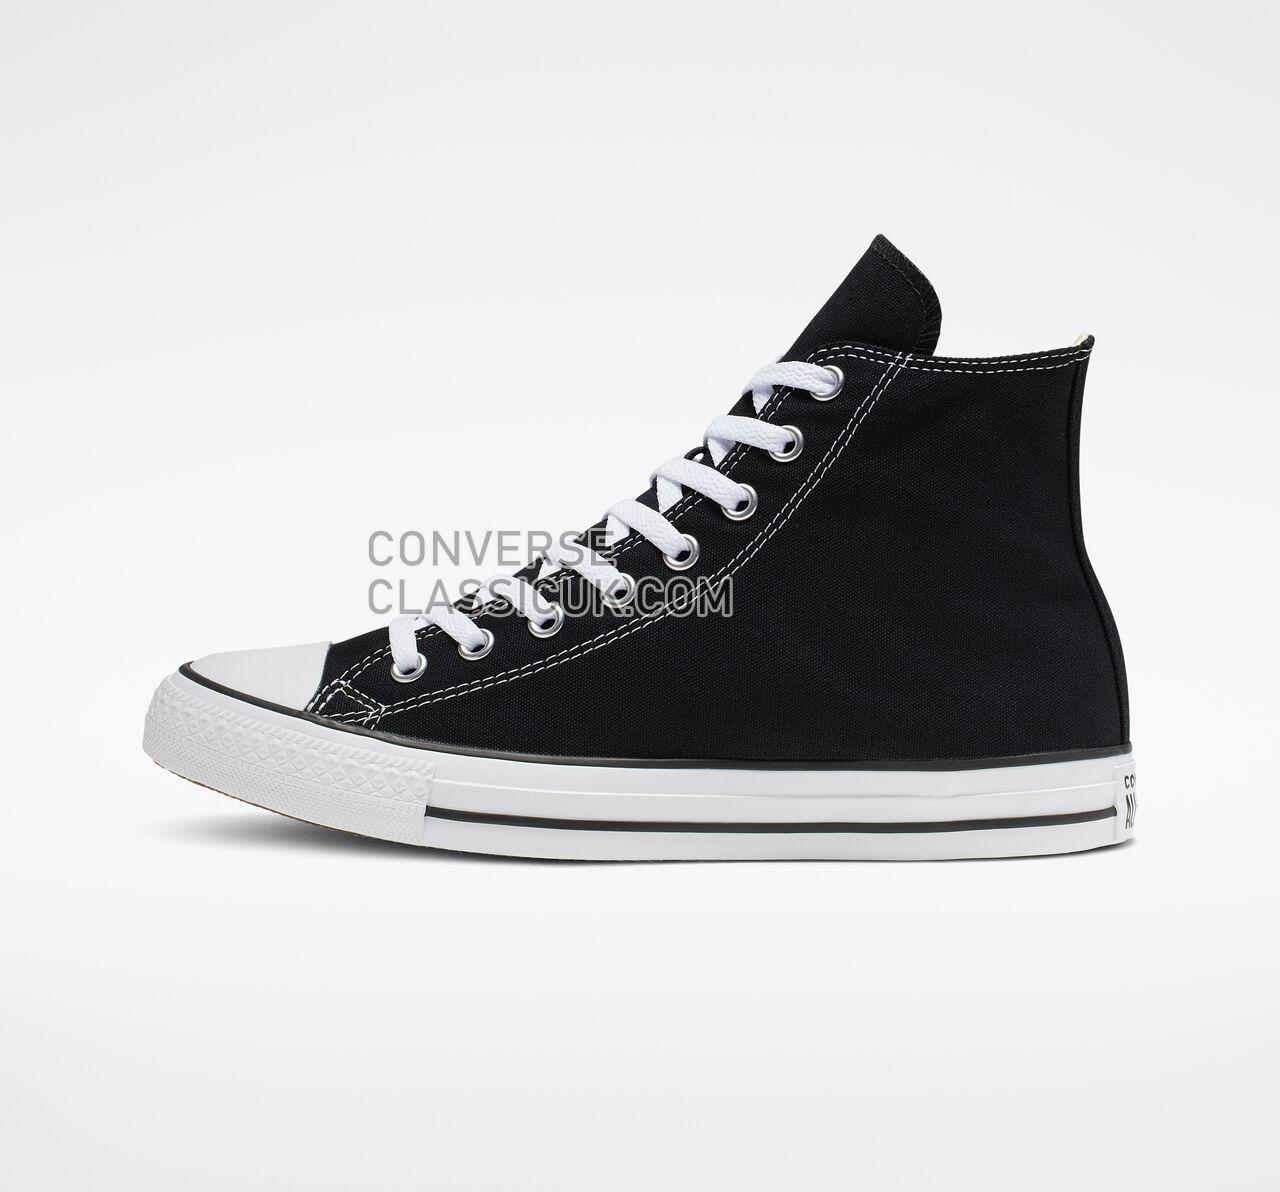 Converse Chuck Taylor All Star High Top Mens Womens Unisex M9160 Black Shoes